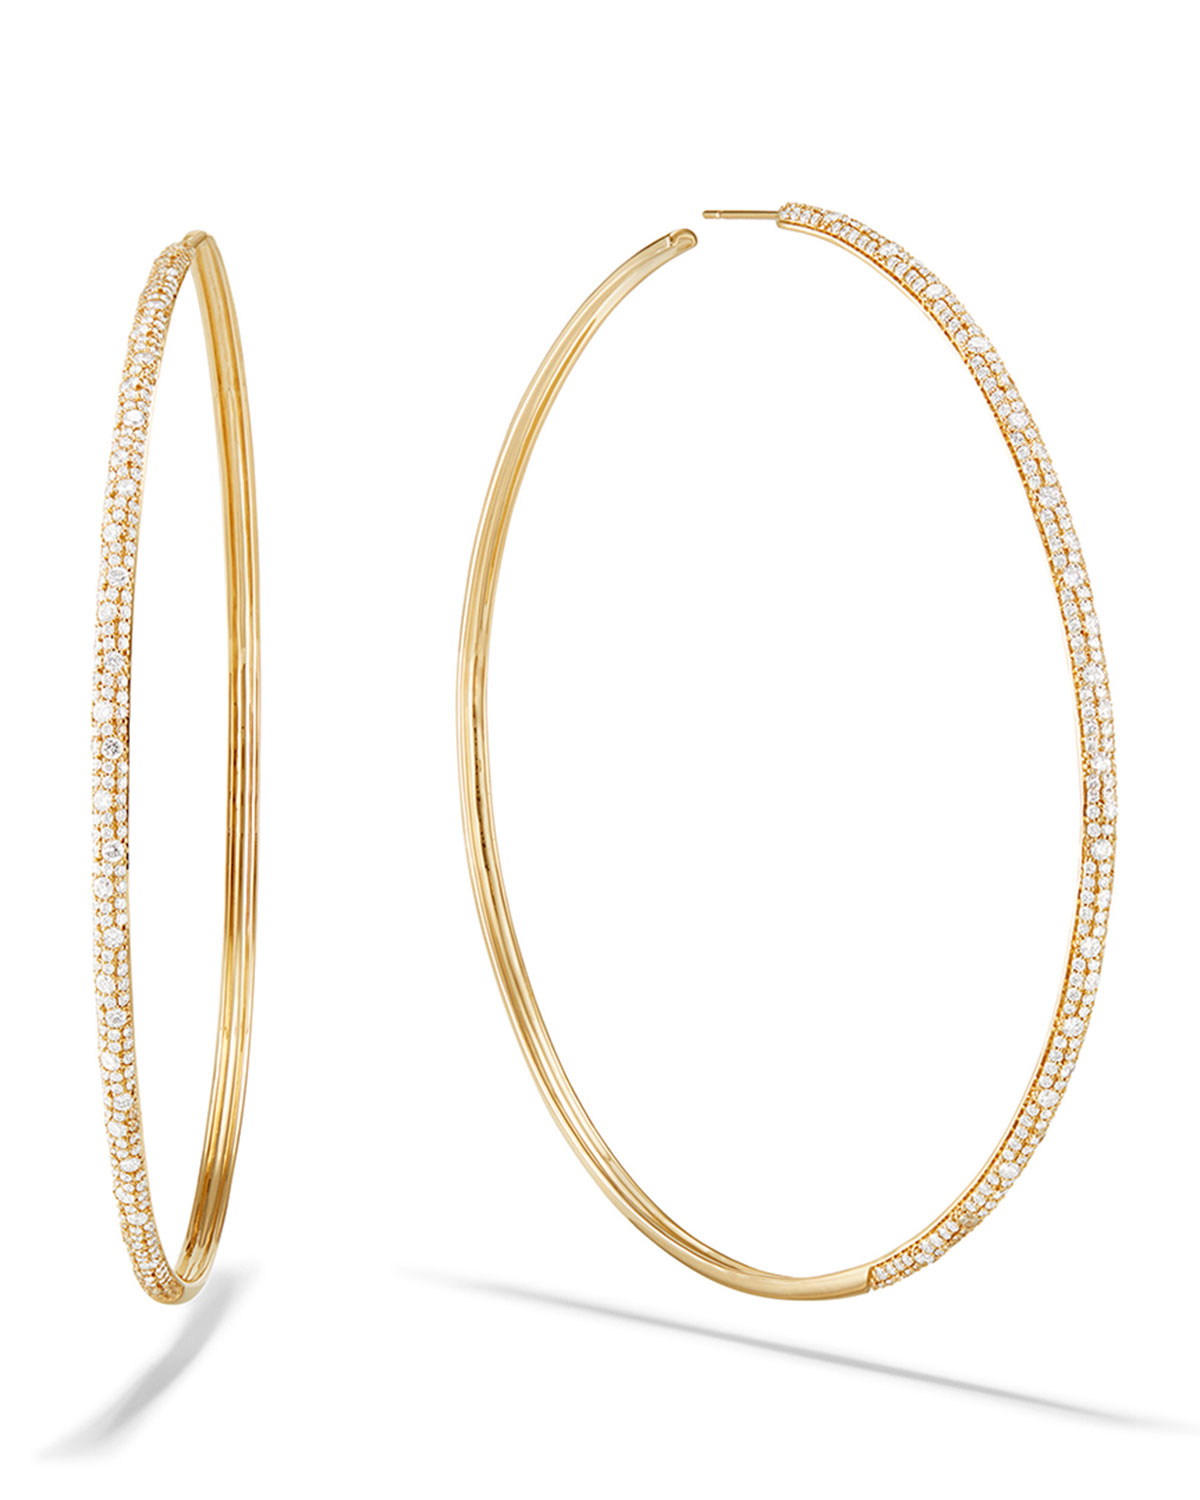 Lana 14k Thin Diamond Cluster Hoop Earrings, 85mm